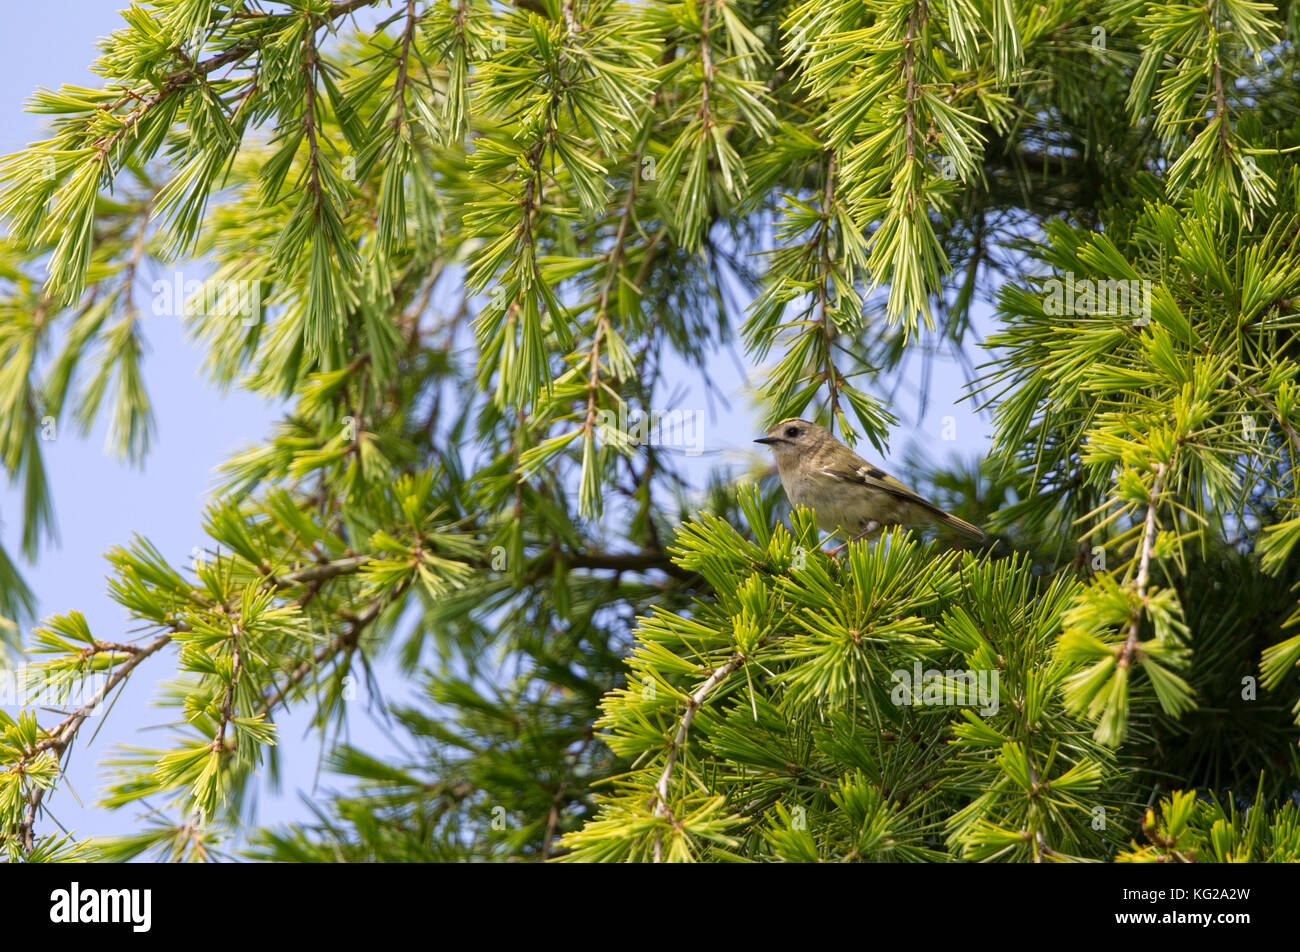 Goldcrest, Regulus regulus, single adult perched in conifer. Worcestershire, UK. - Stock Image